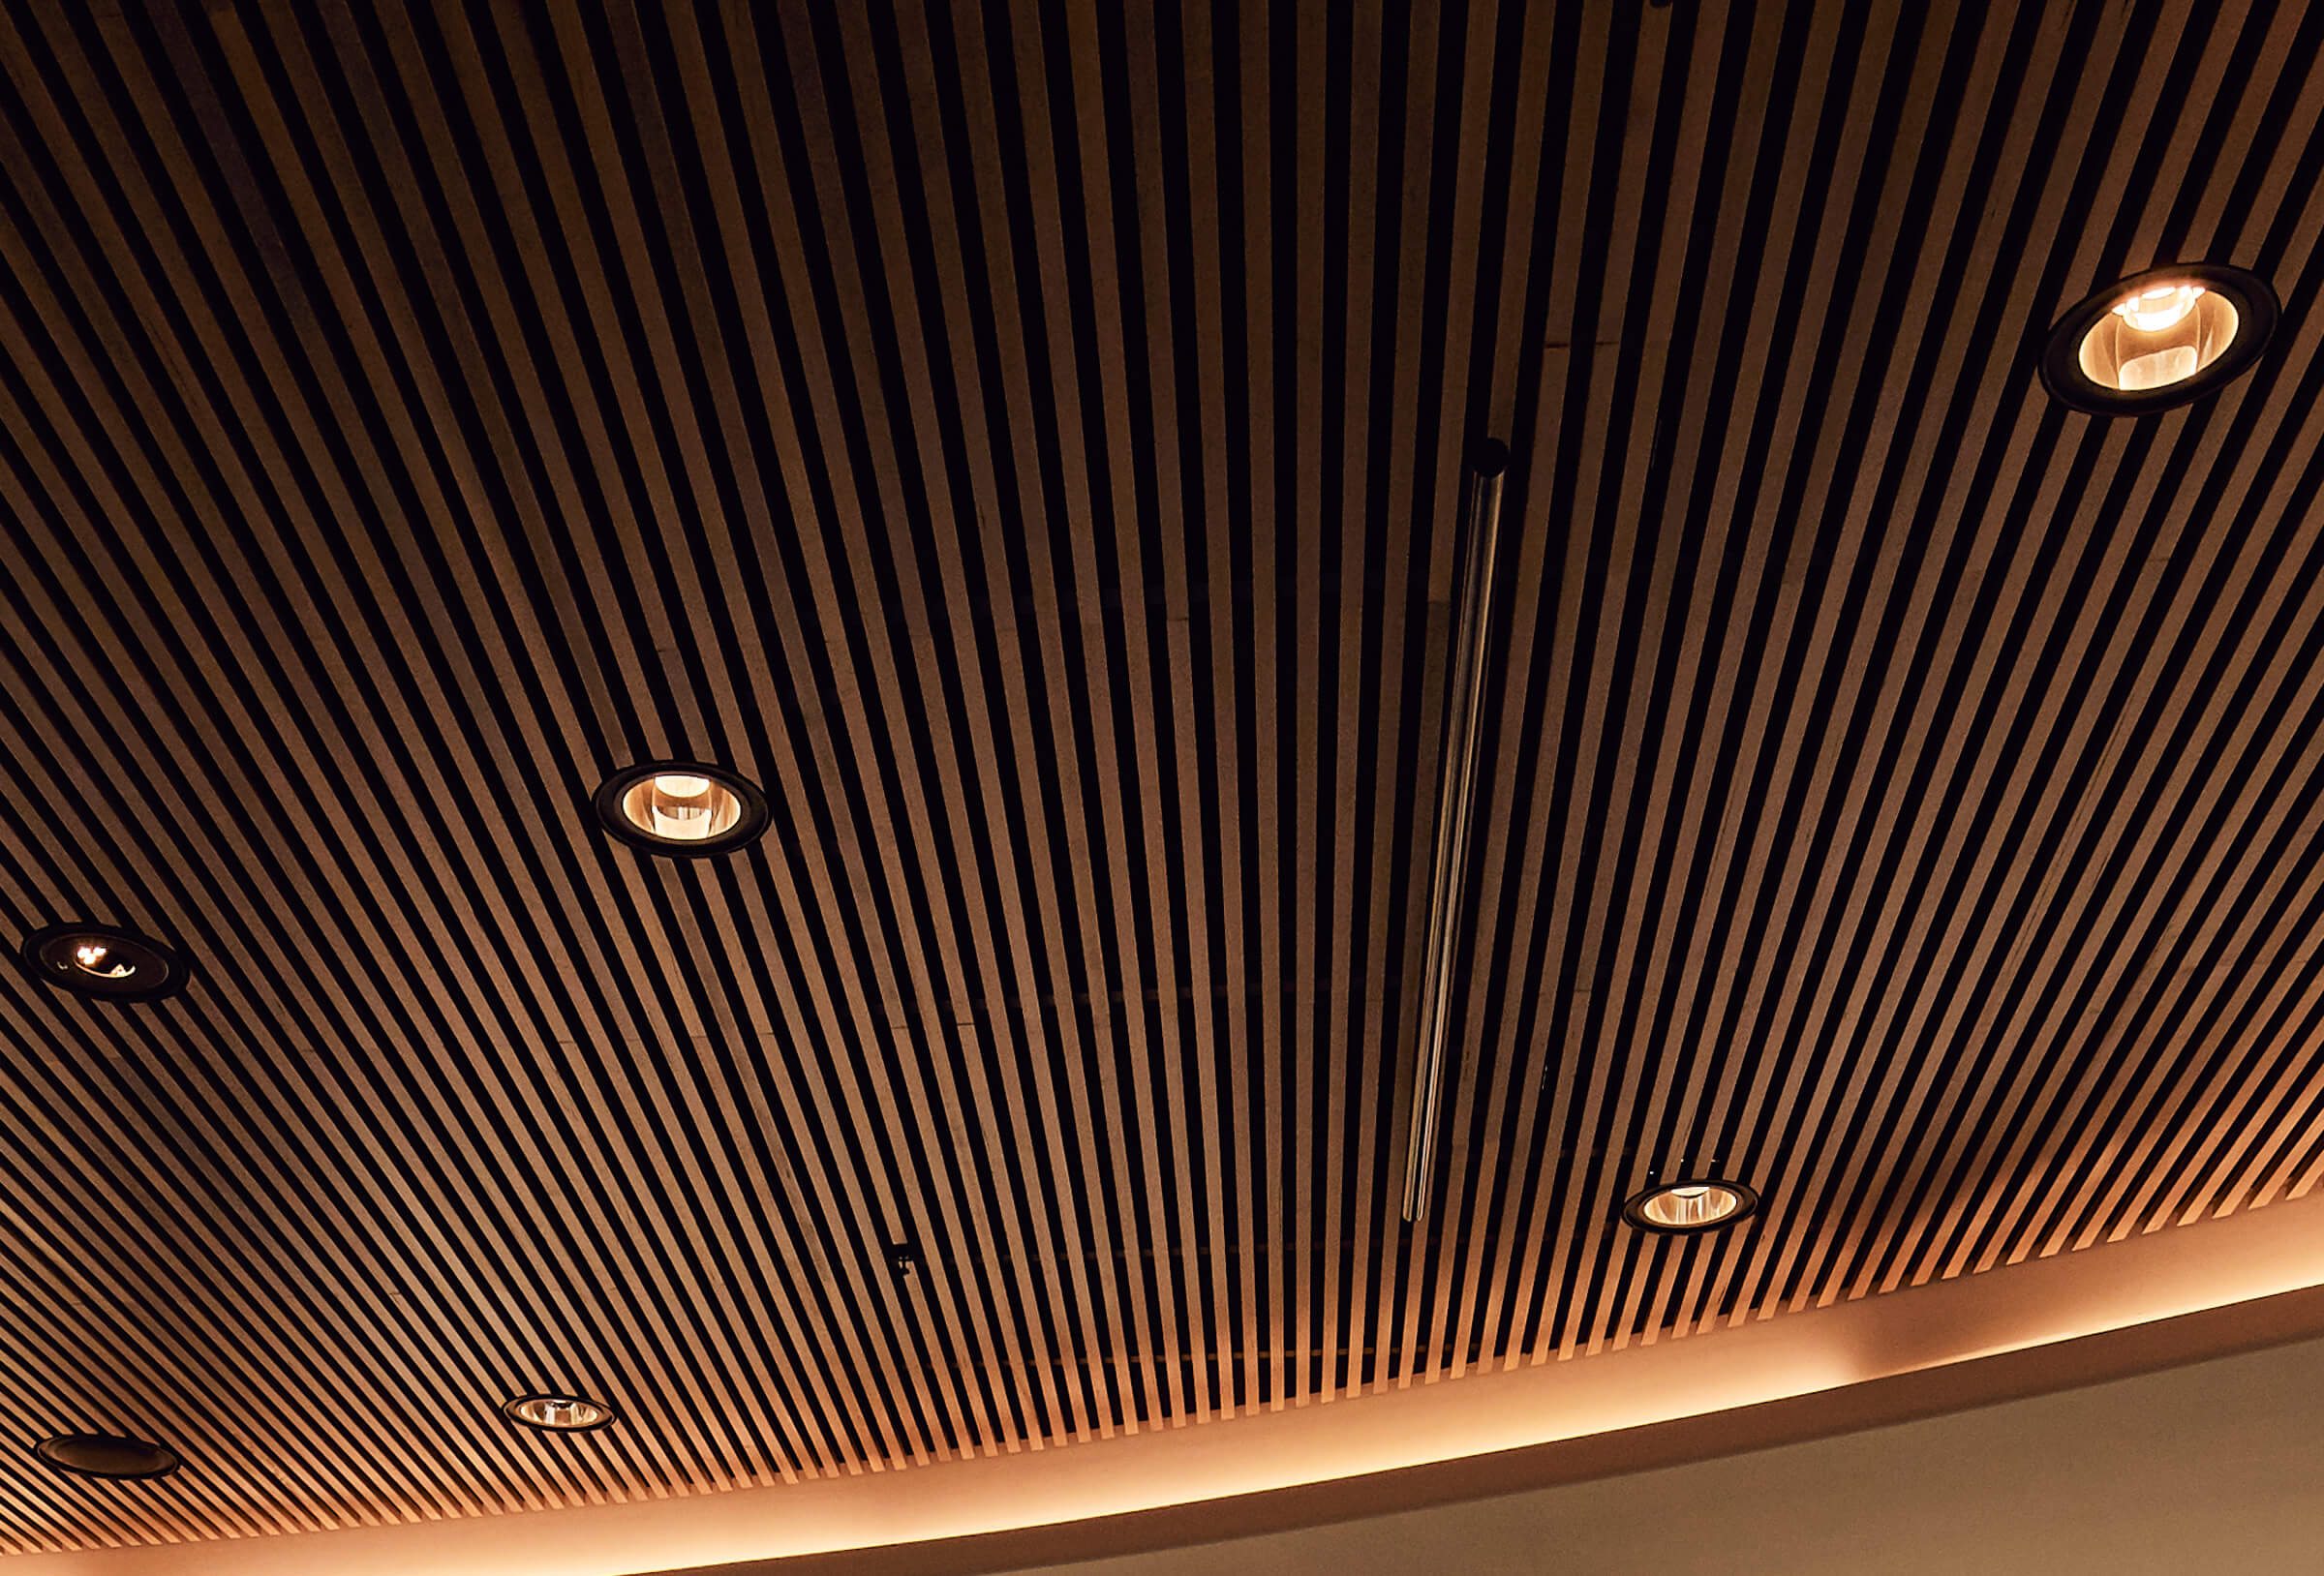 Sculptform Integrated lighting - Can lights